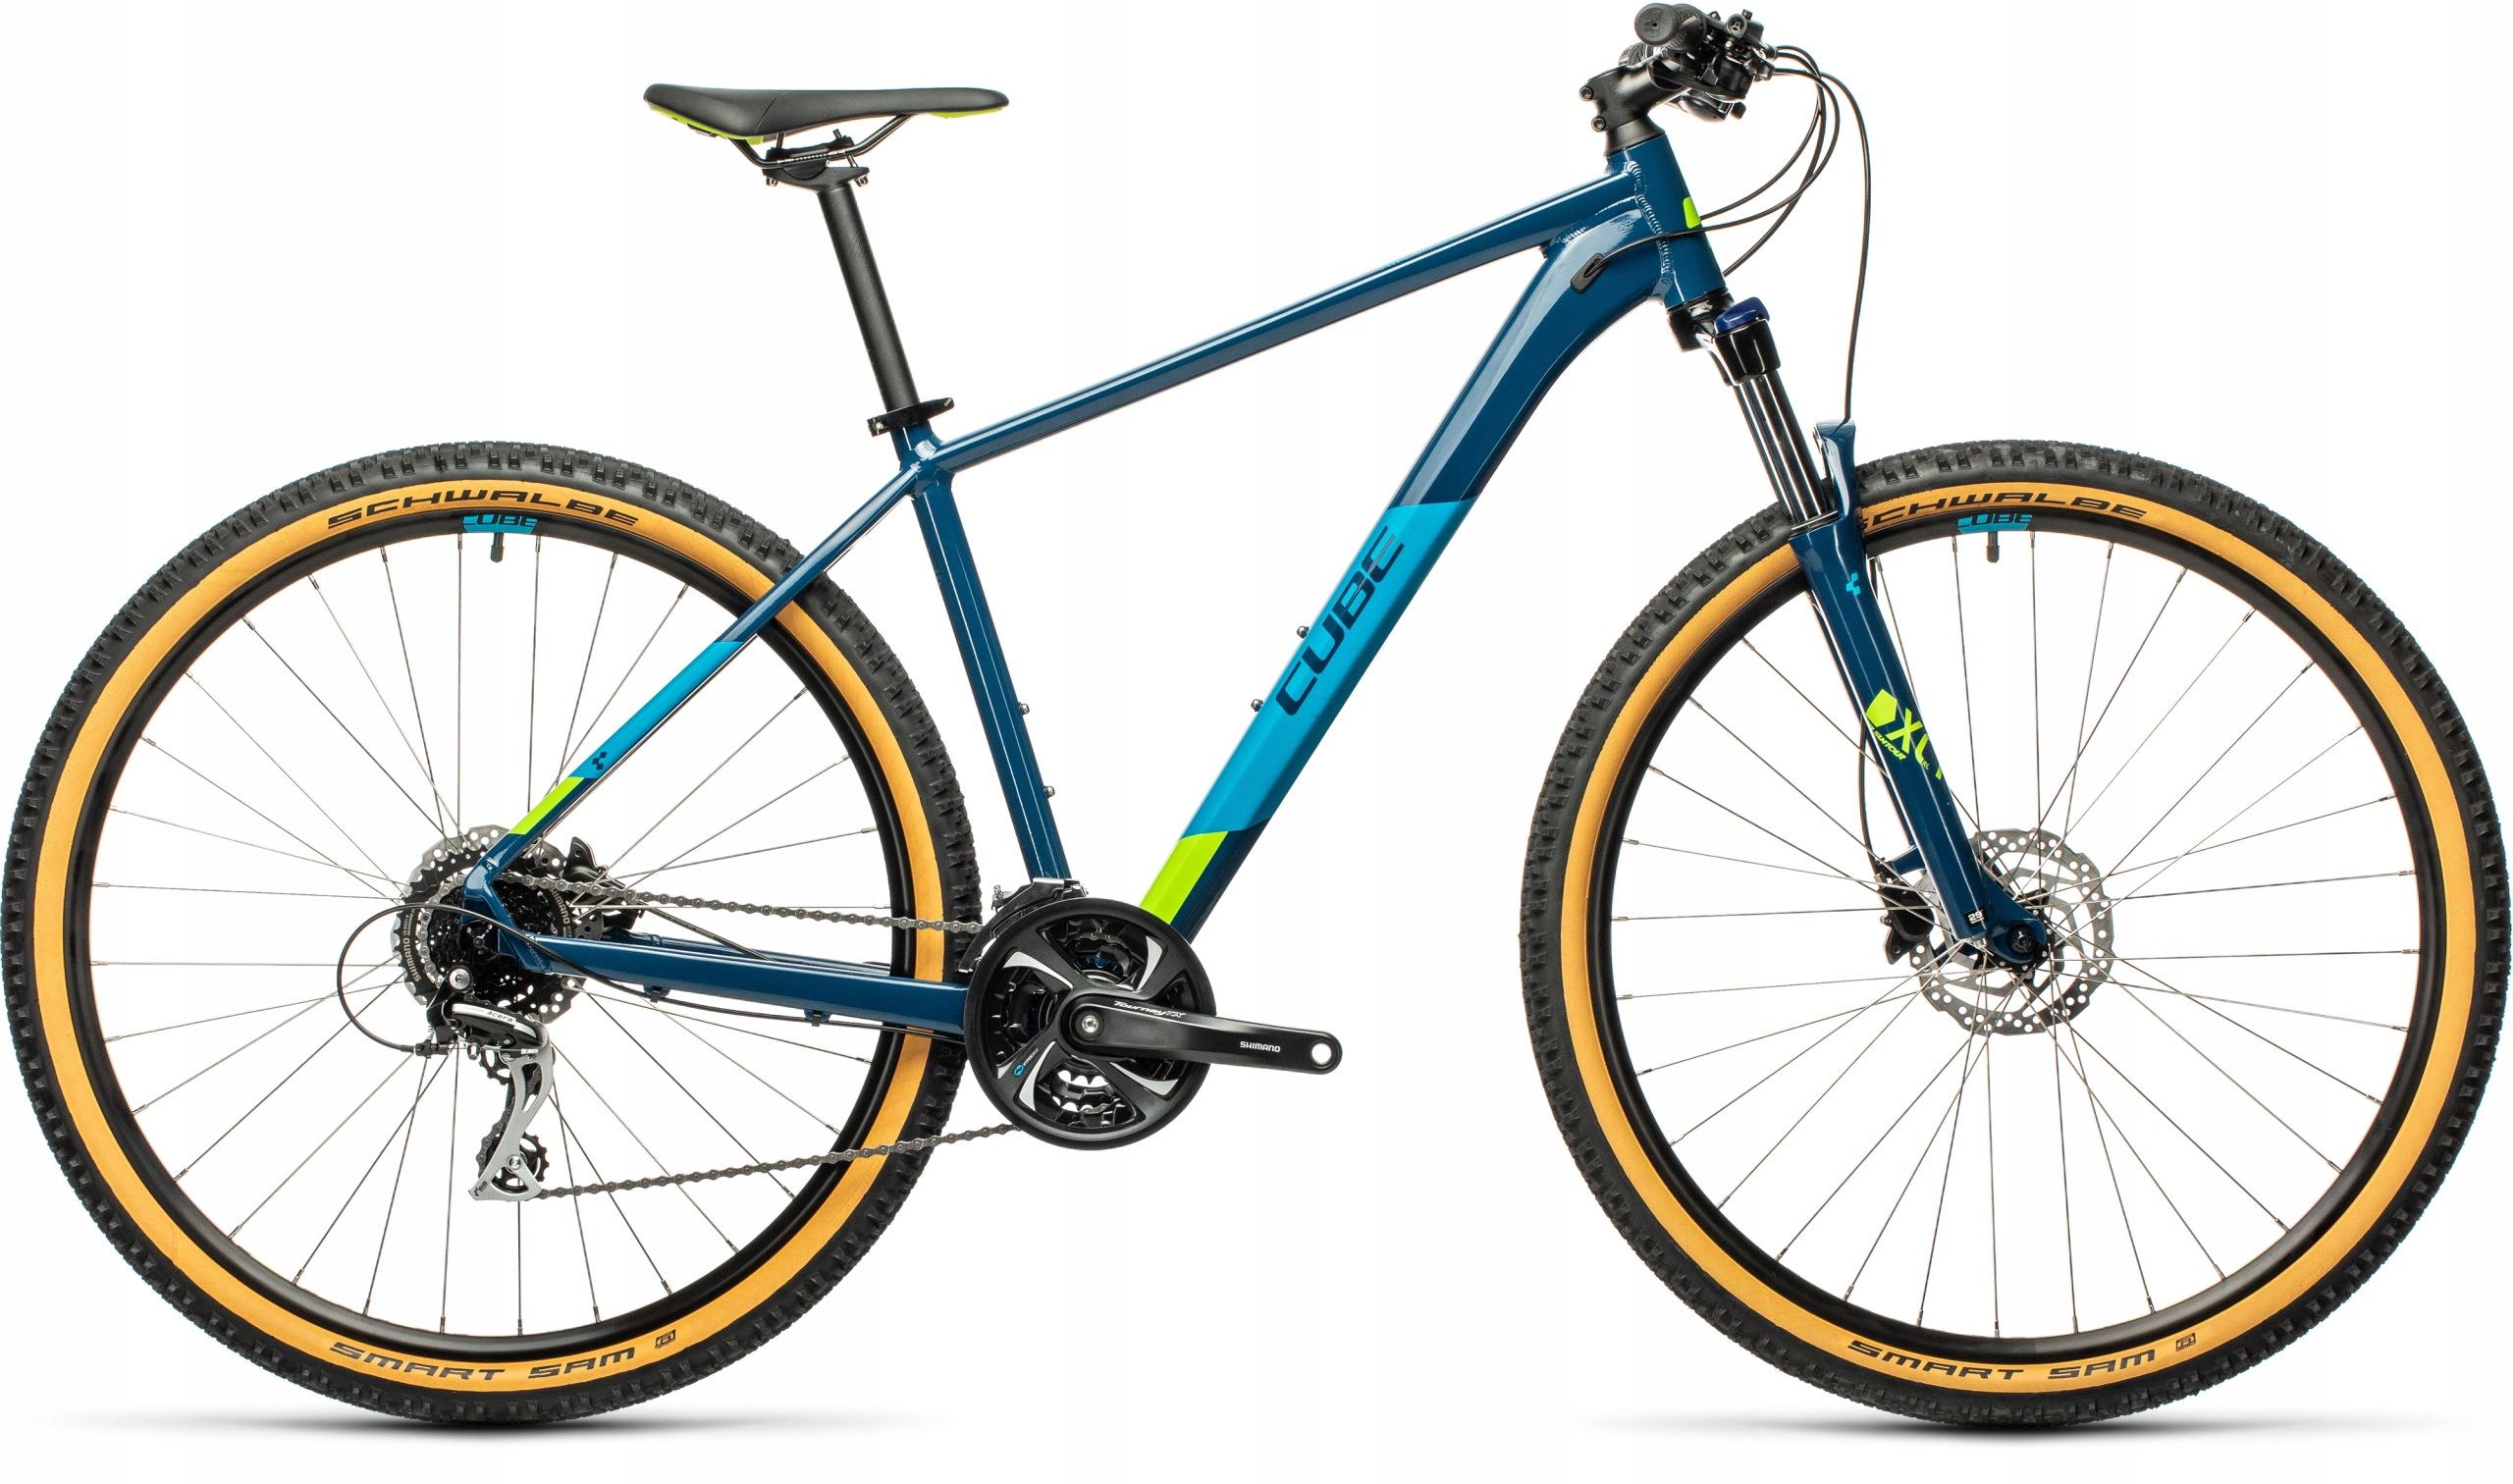 Horský bicykel - Bike Cube Aim Race 2021 27.5 16 S Blueberry !!!